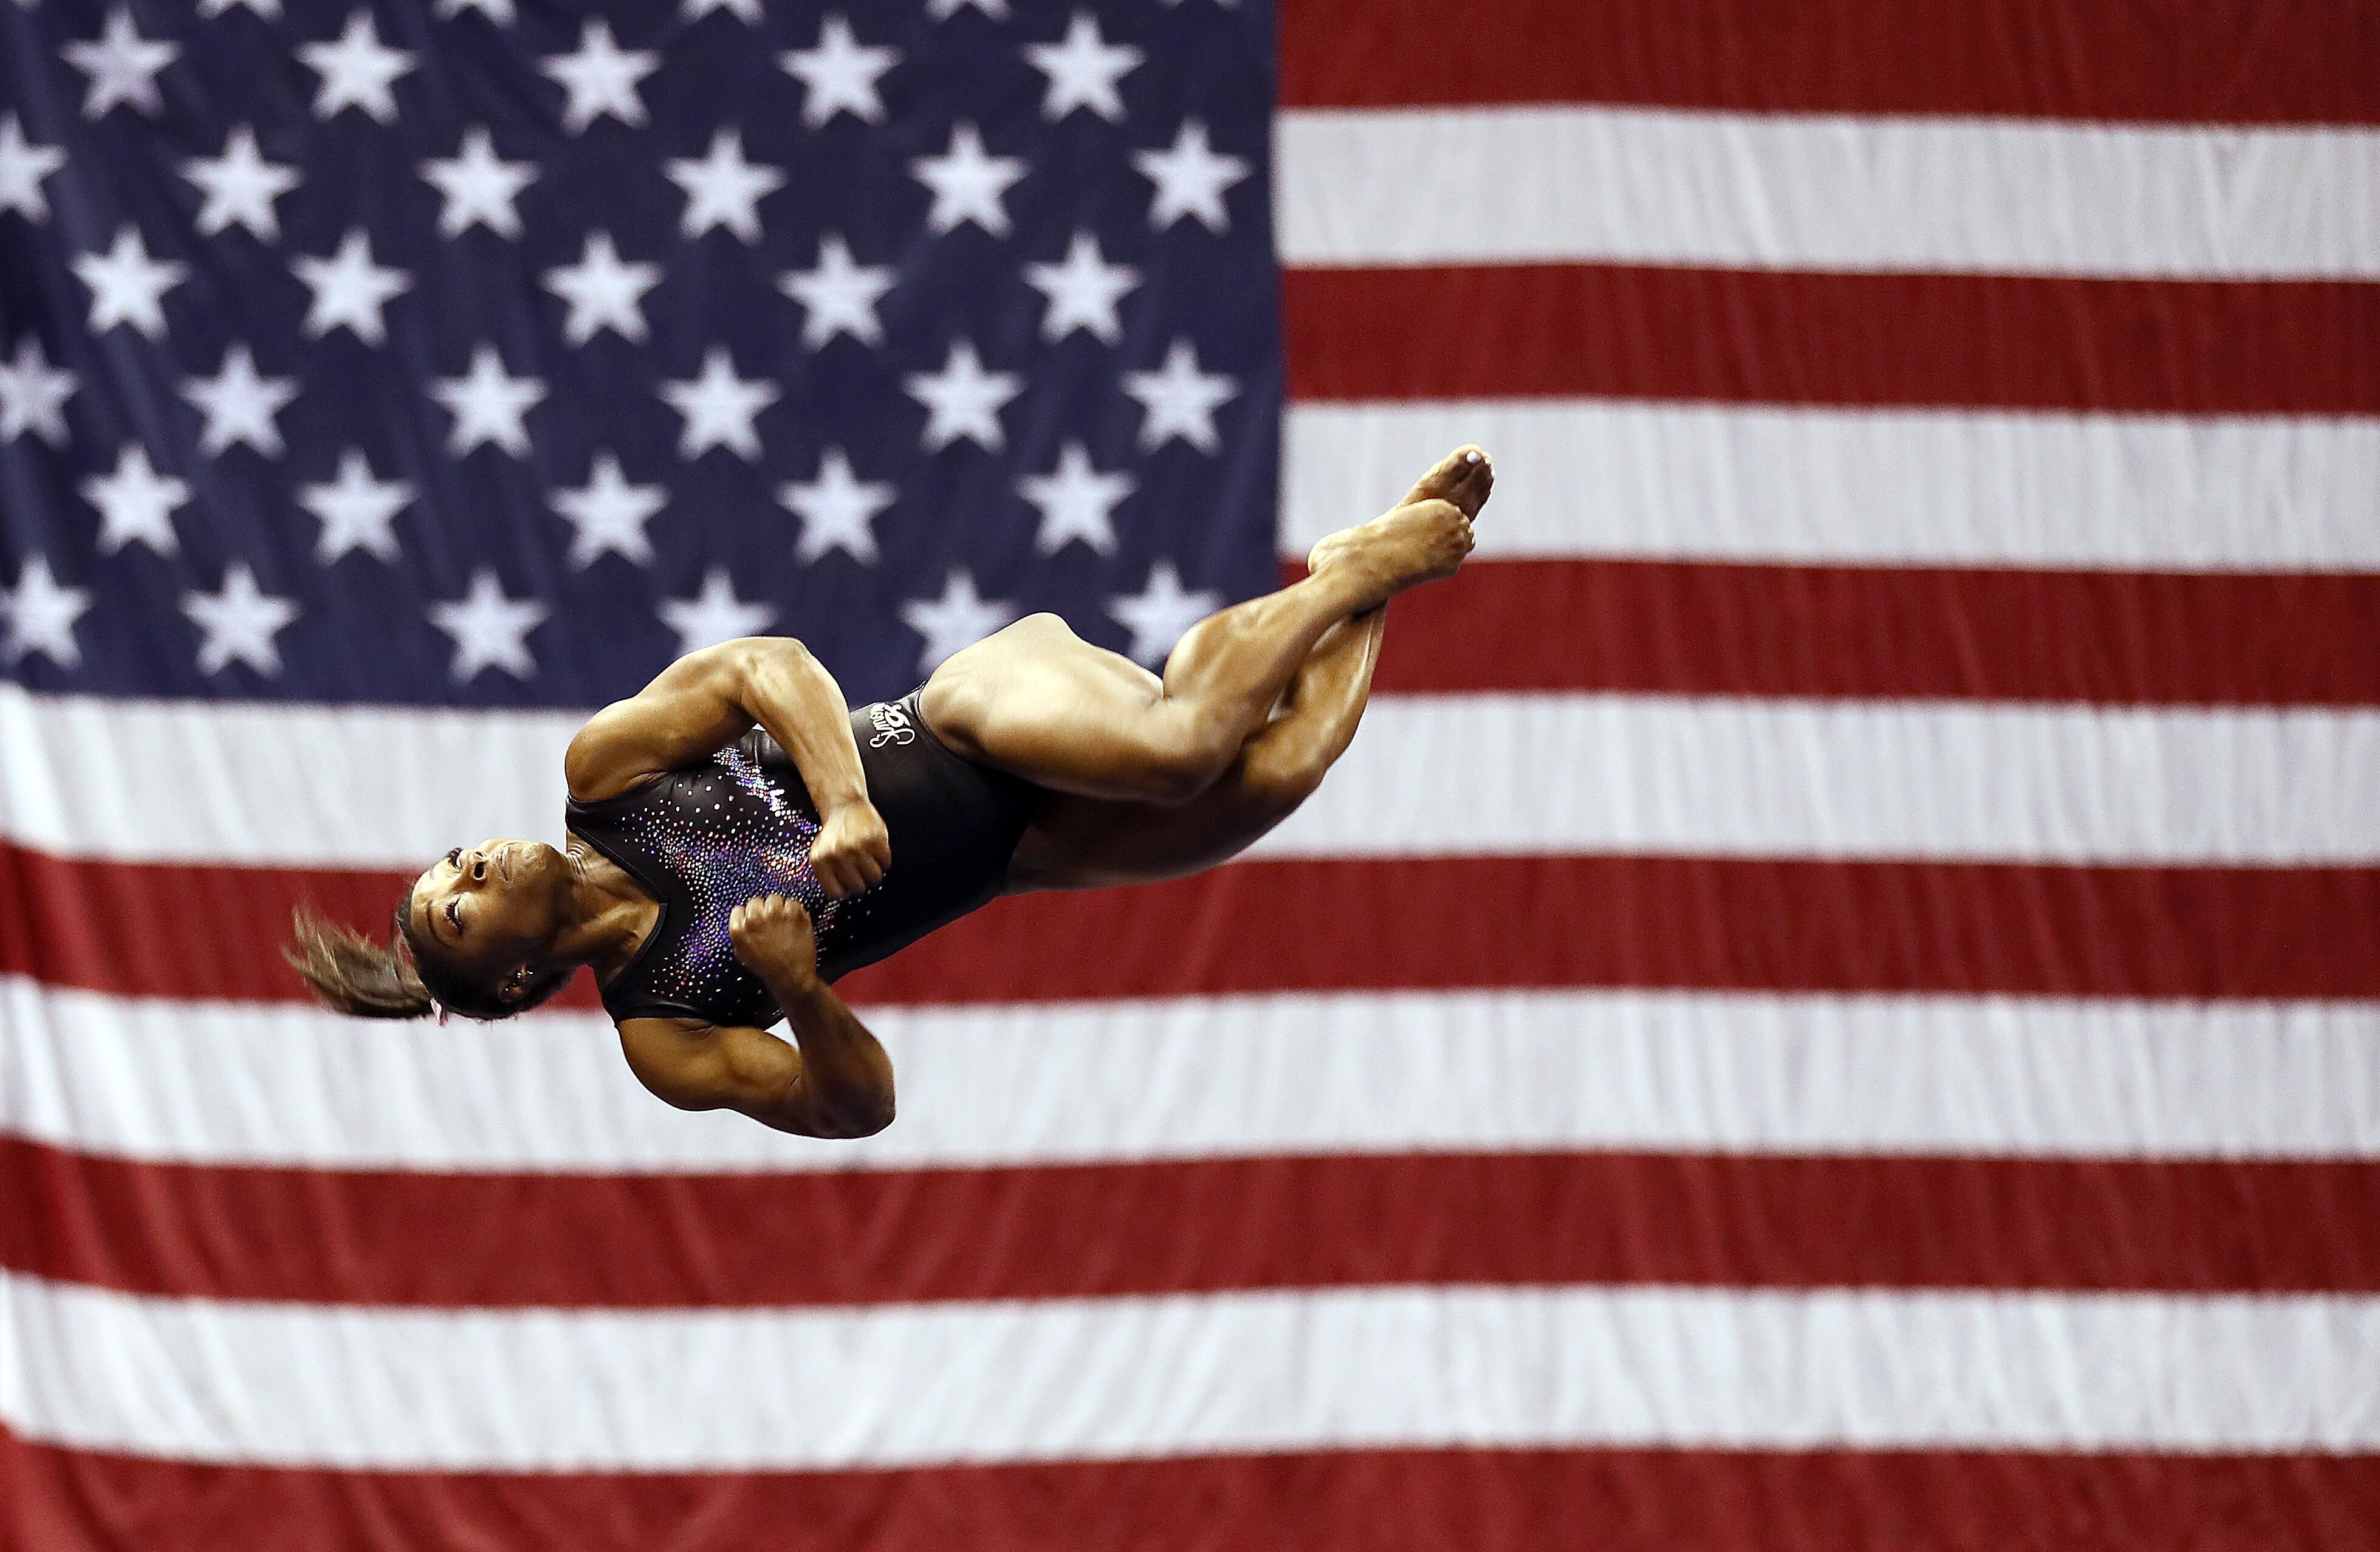 Simone Biles at the World Championships/ Source: Getty Images